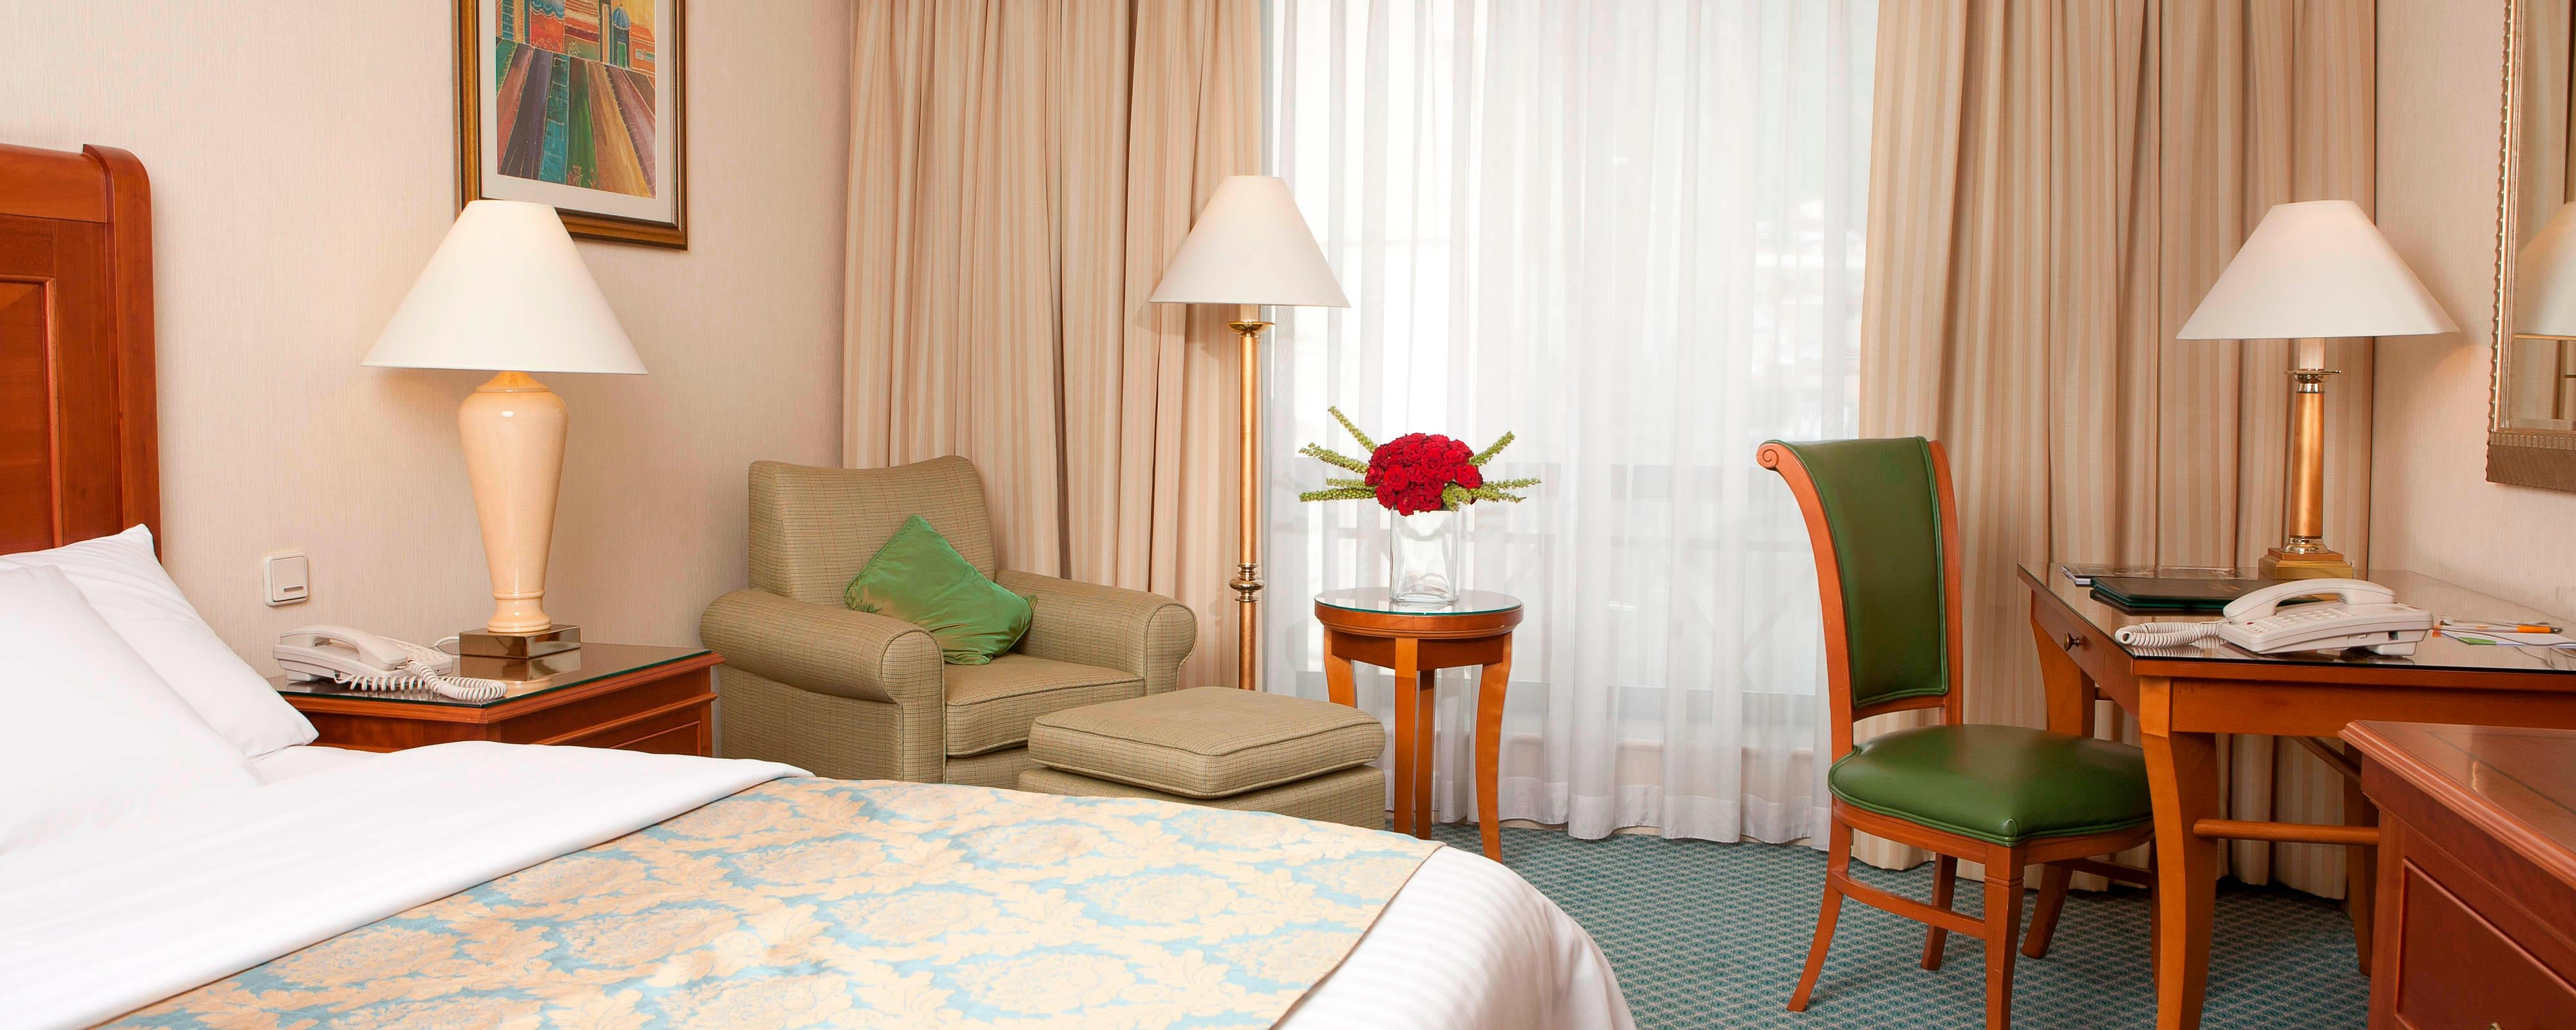 Quarto Deluxe King no hotel Courtyard em Tbilisi